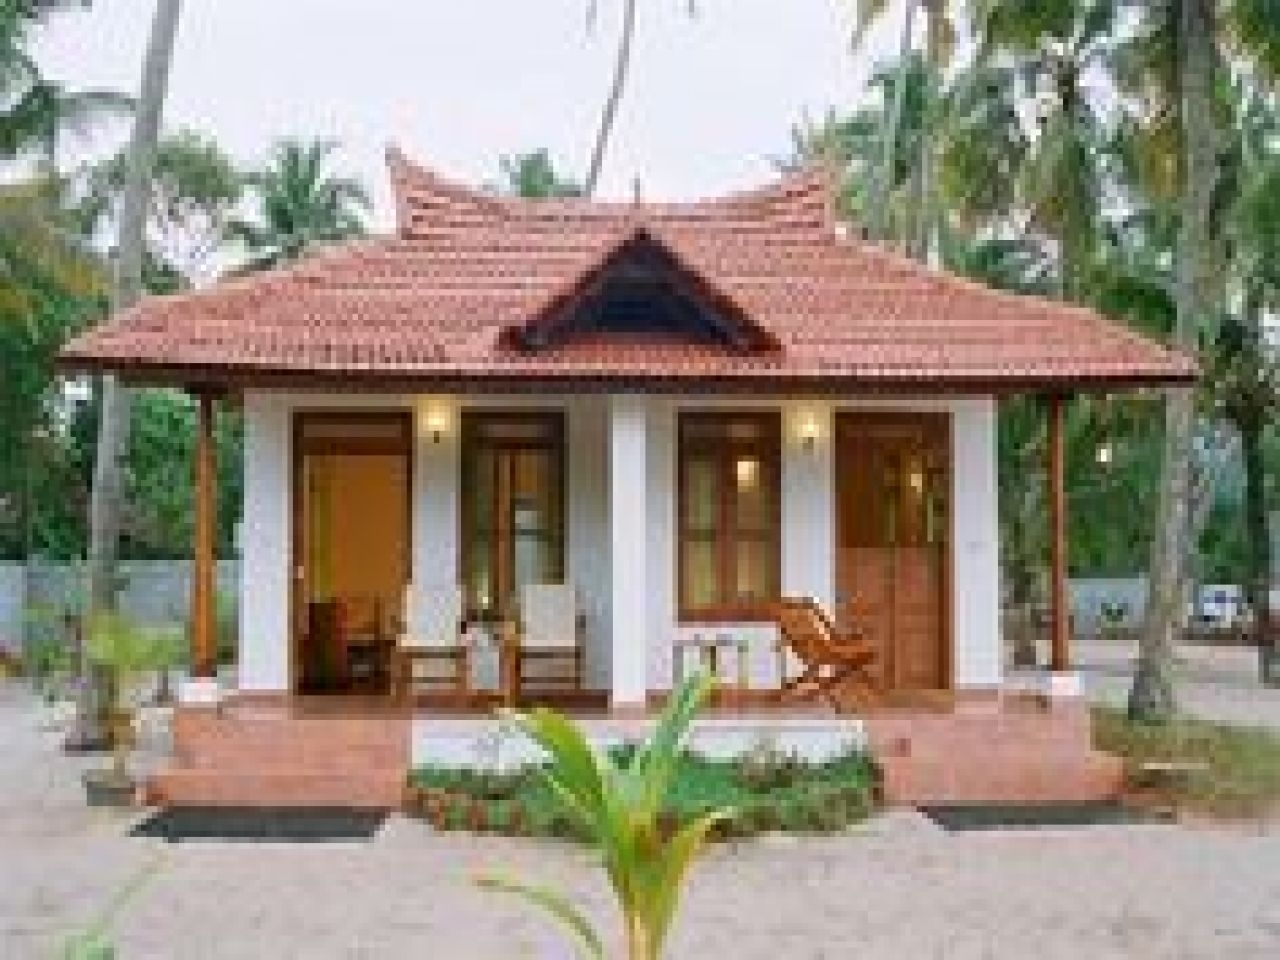 Beach House Plans For Small Houses Kerala Cottage Floor Coastal Small Beach Houses Village House Design Beach House Plans